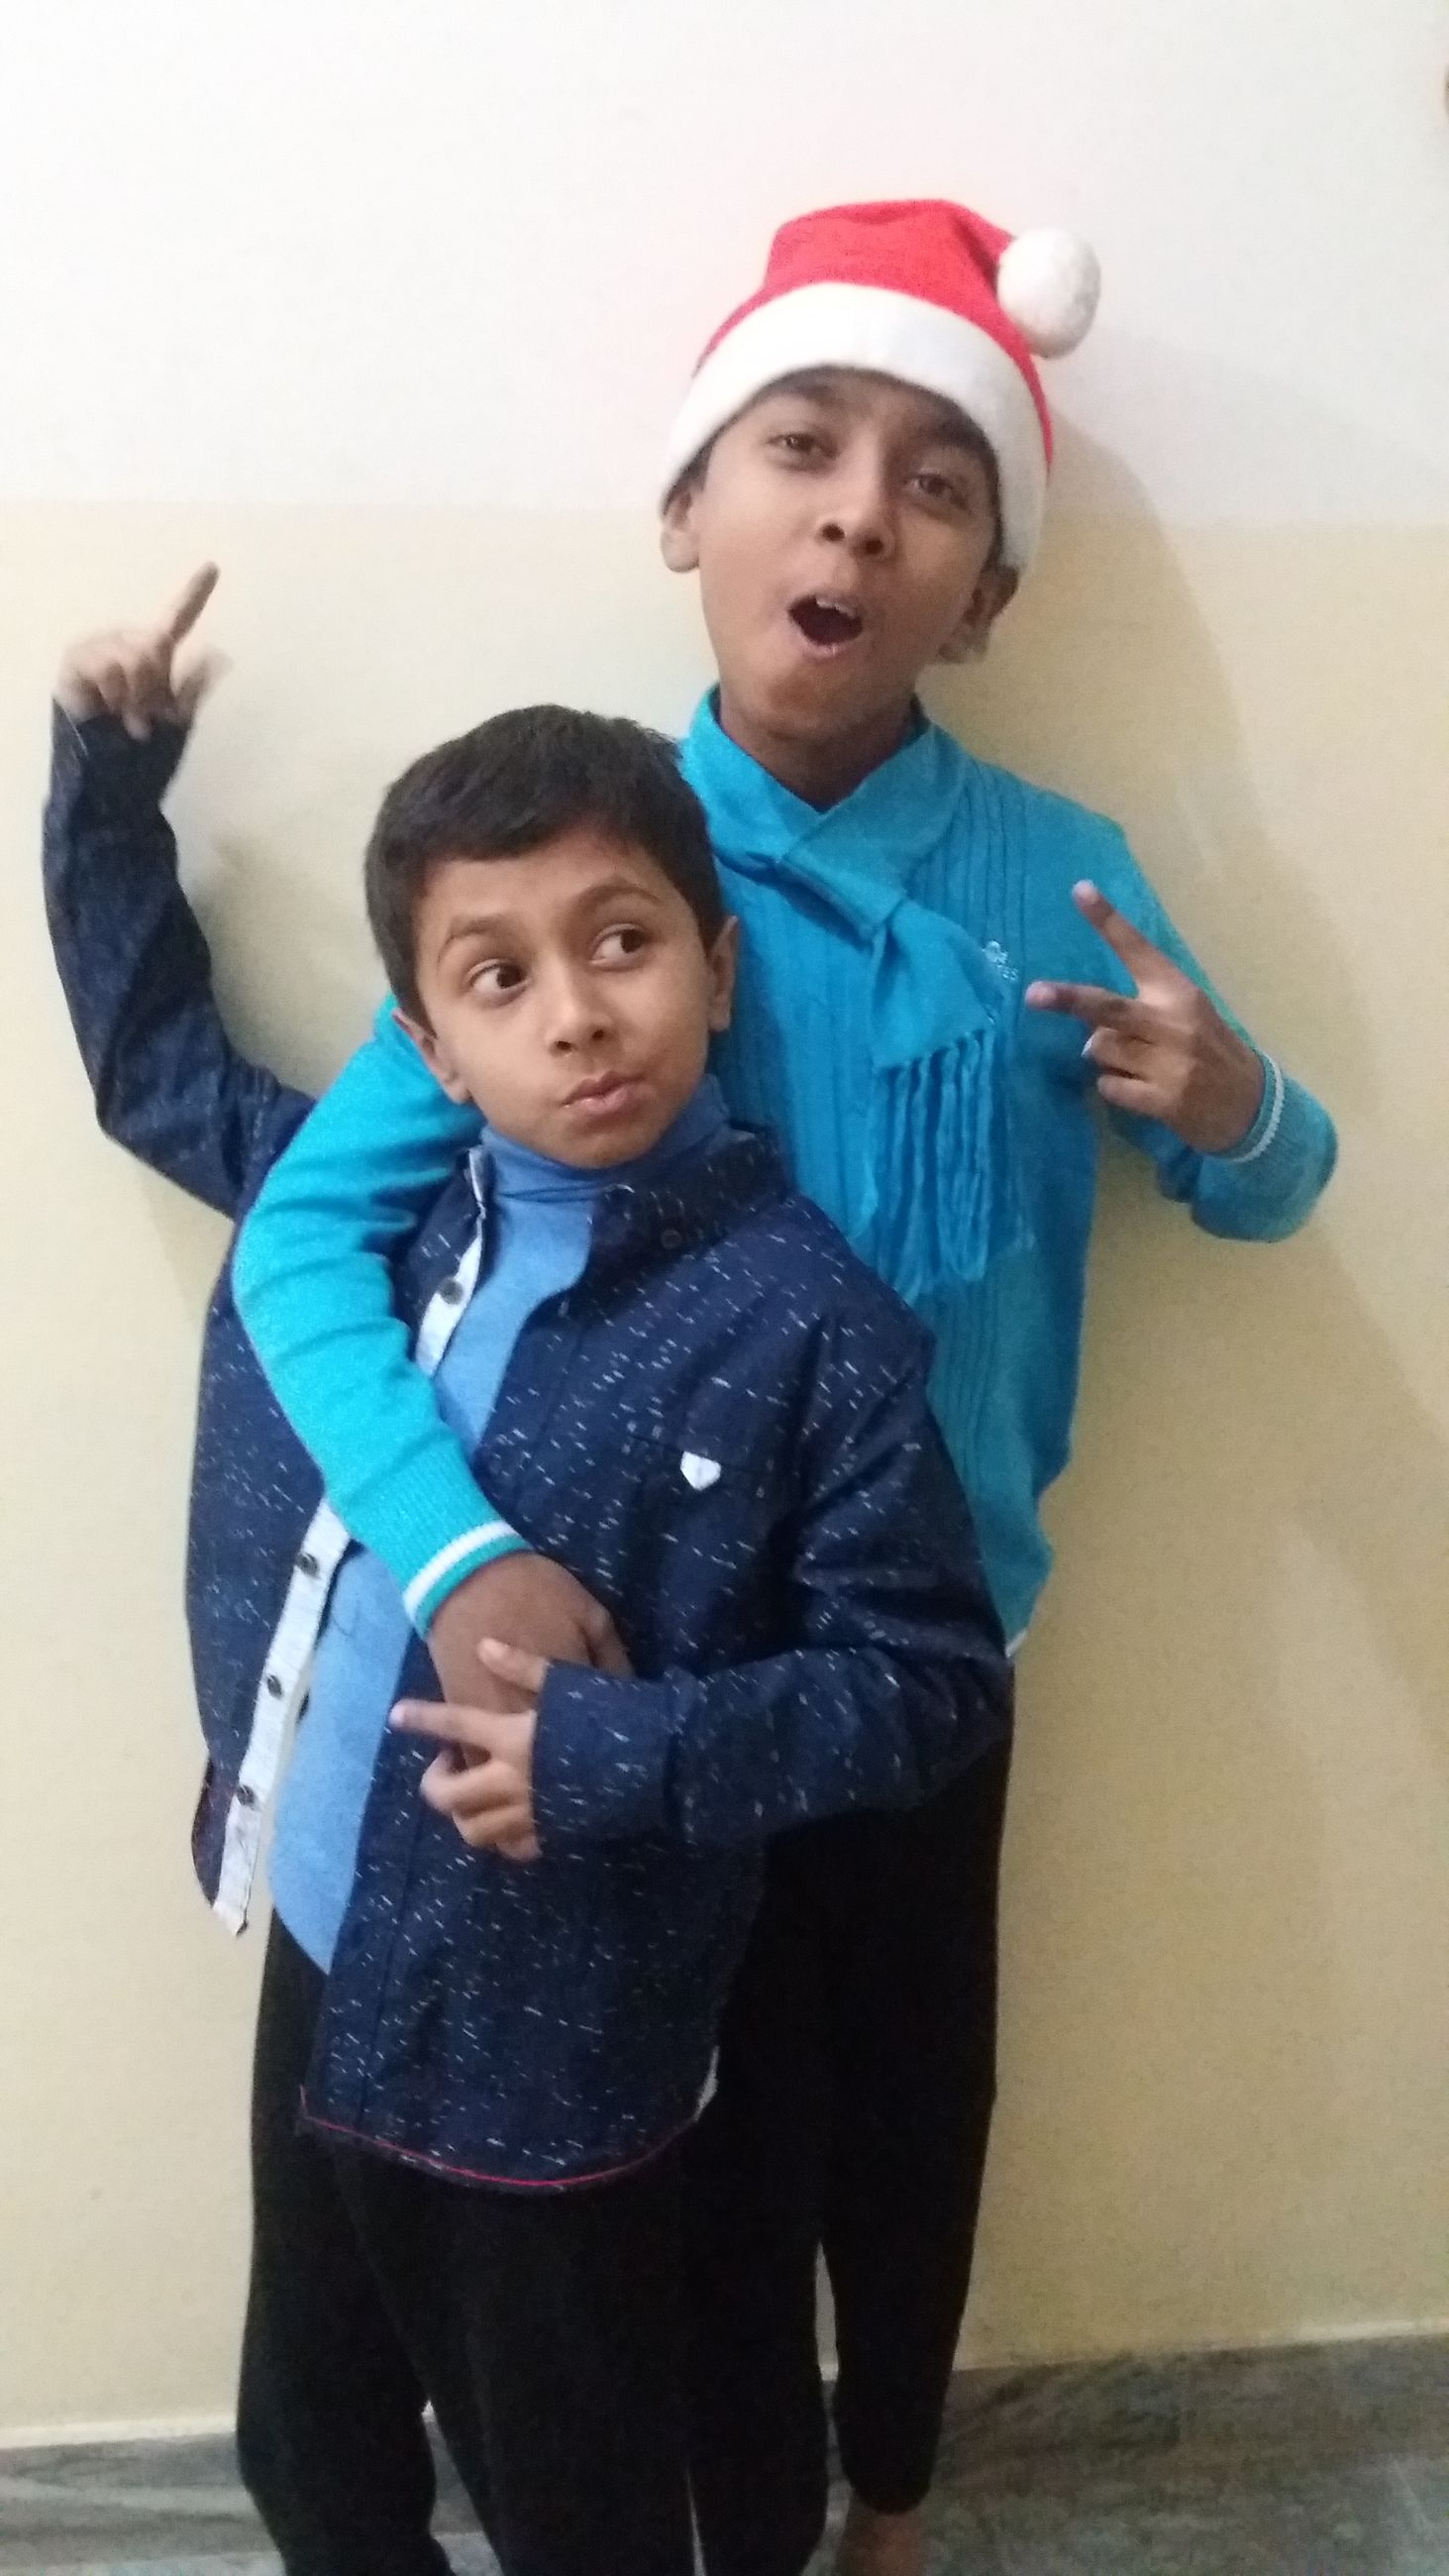 bonding, togetherness, person, love, family, childhood, lifestyles, happiness, smiling, portrait, leisure activity, looking at camera, elementary age, boys, brother, sibling, casual clothing, front view